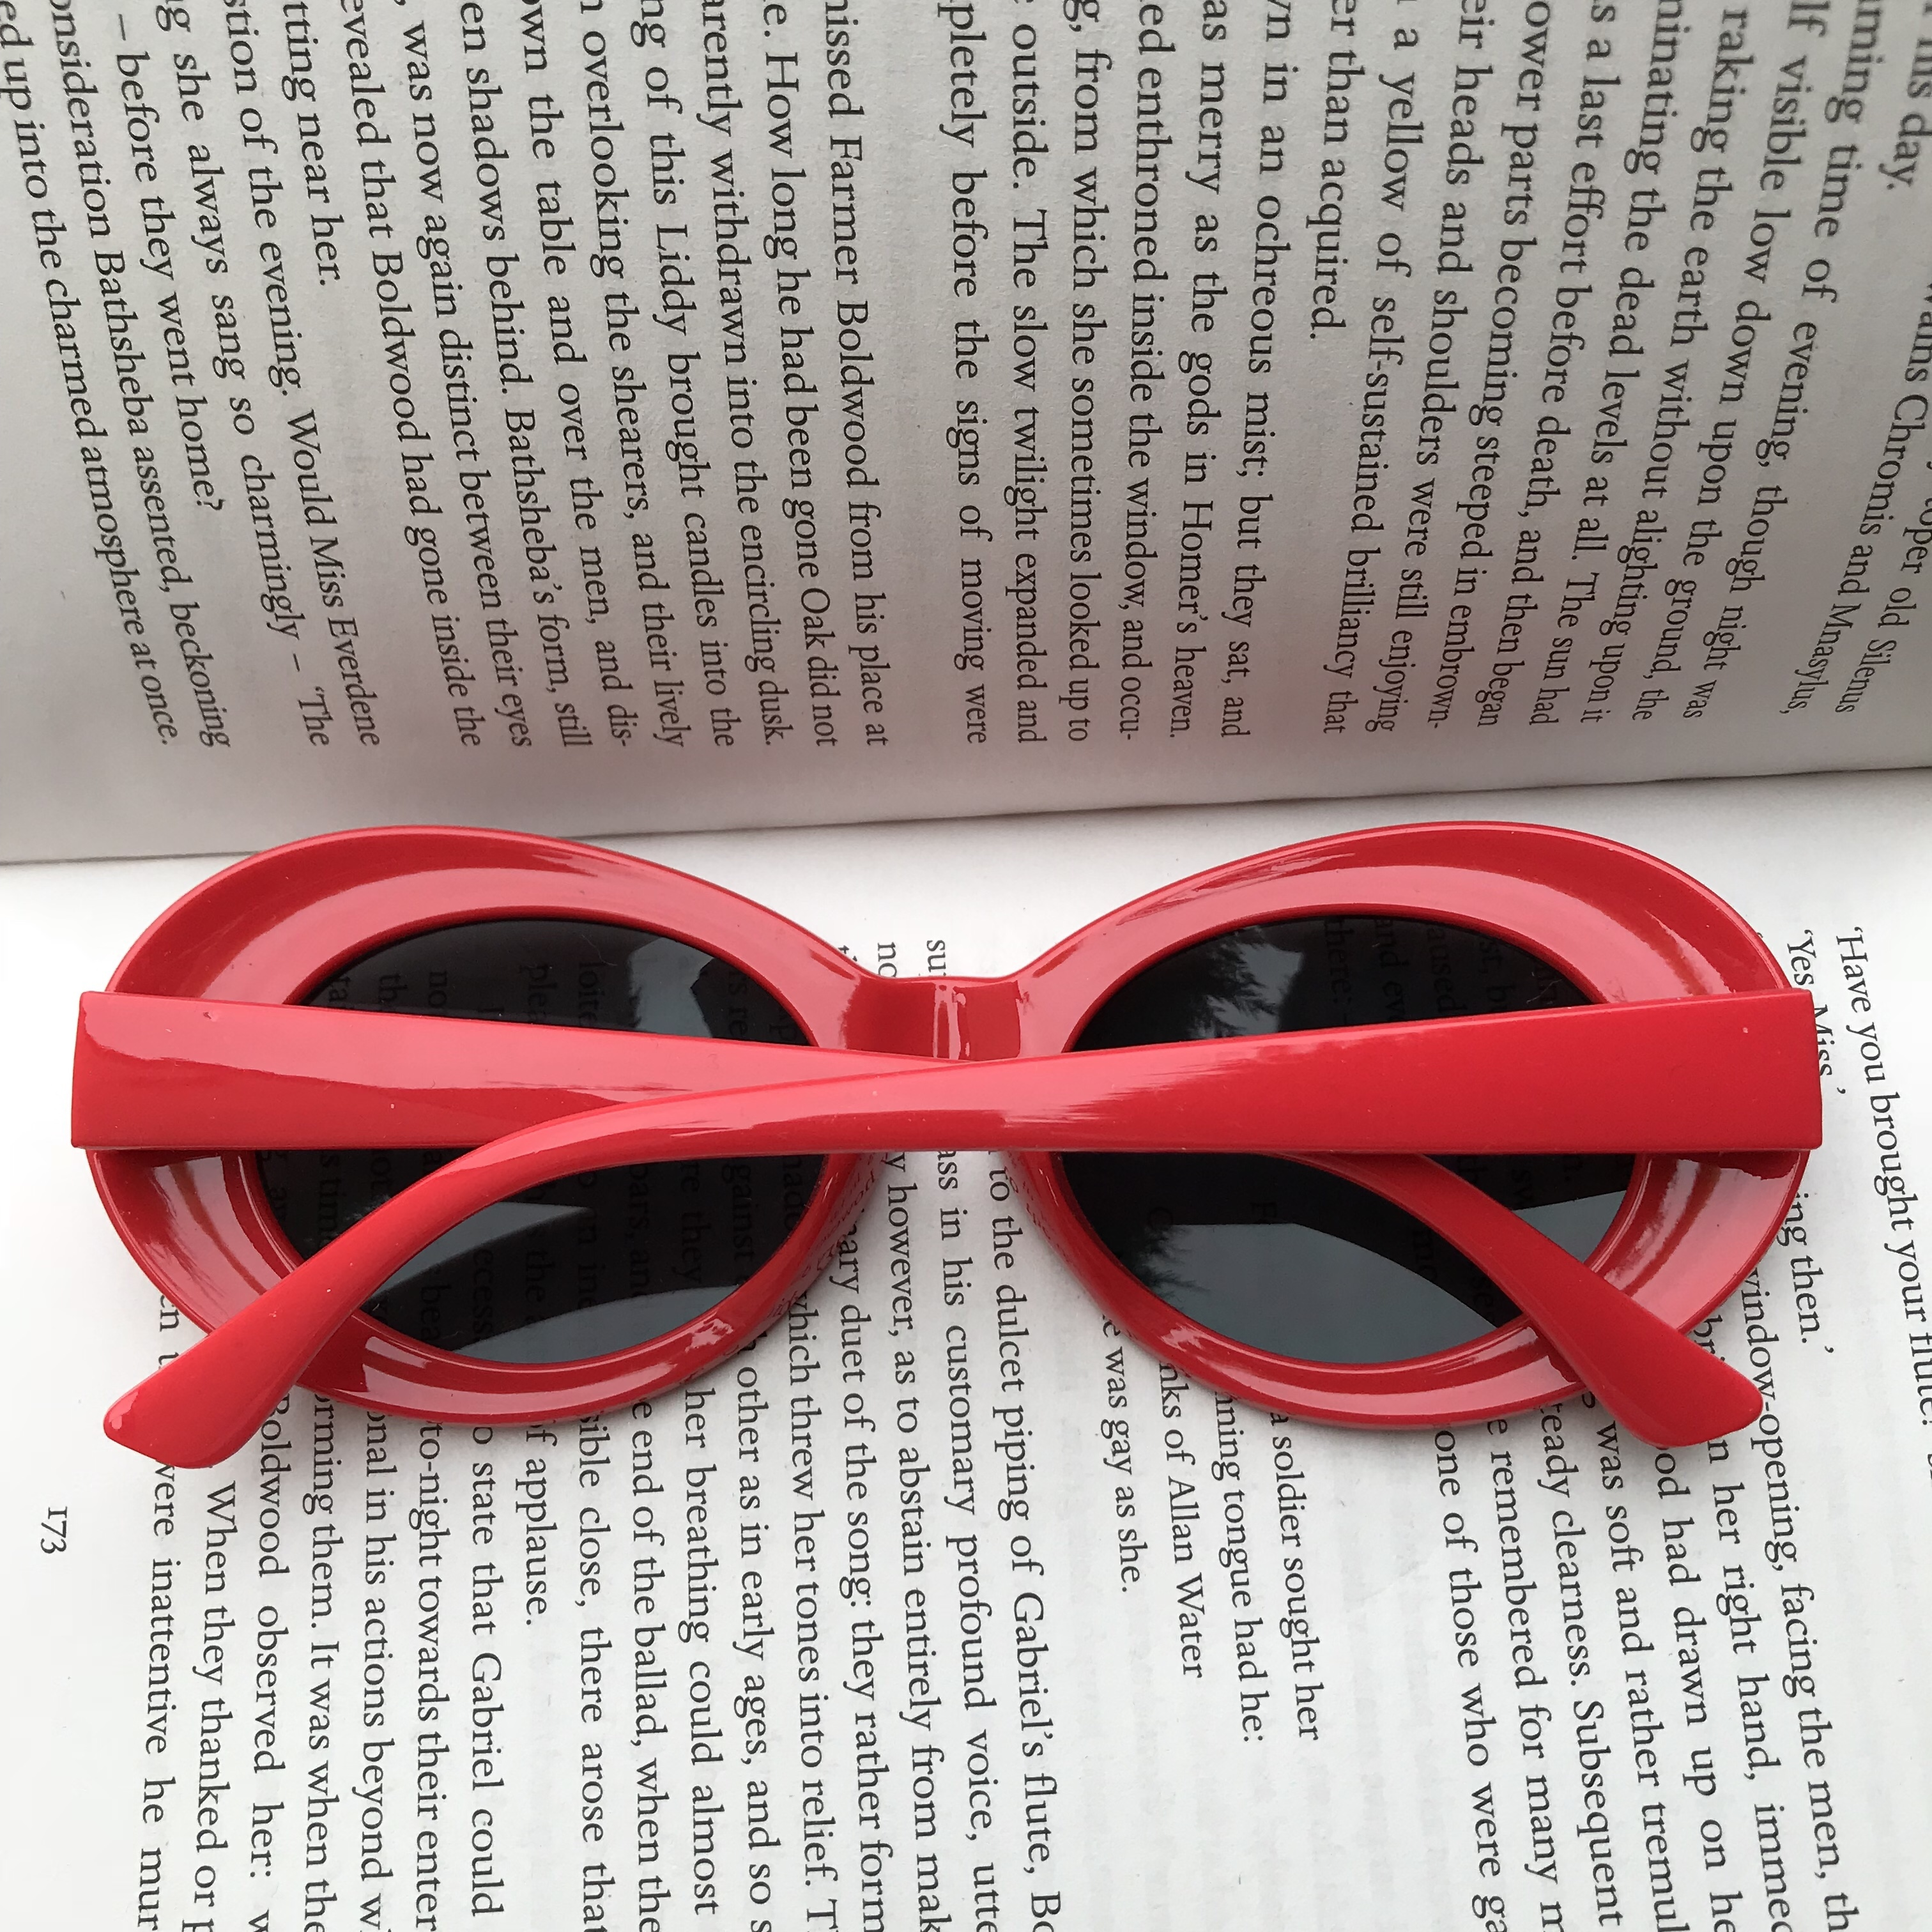 Kurt Cobain style clout goggle sunglasses🔥 sick red    - Depop